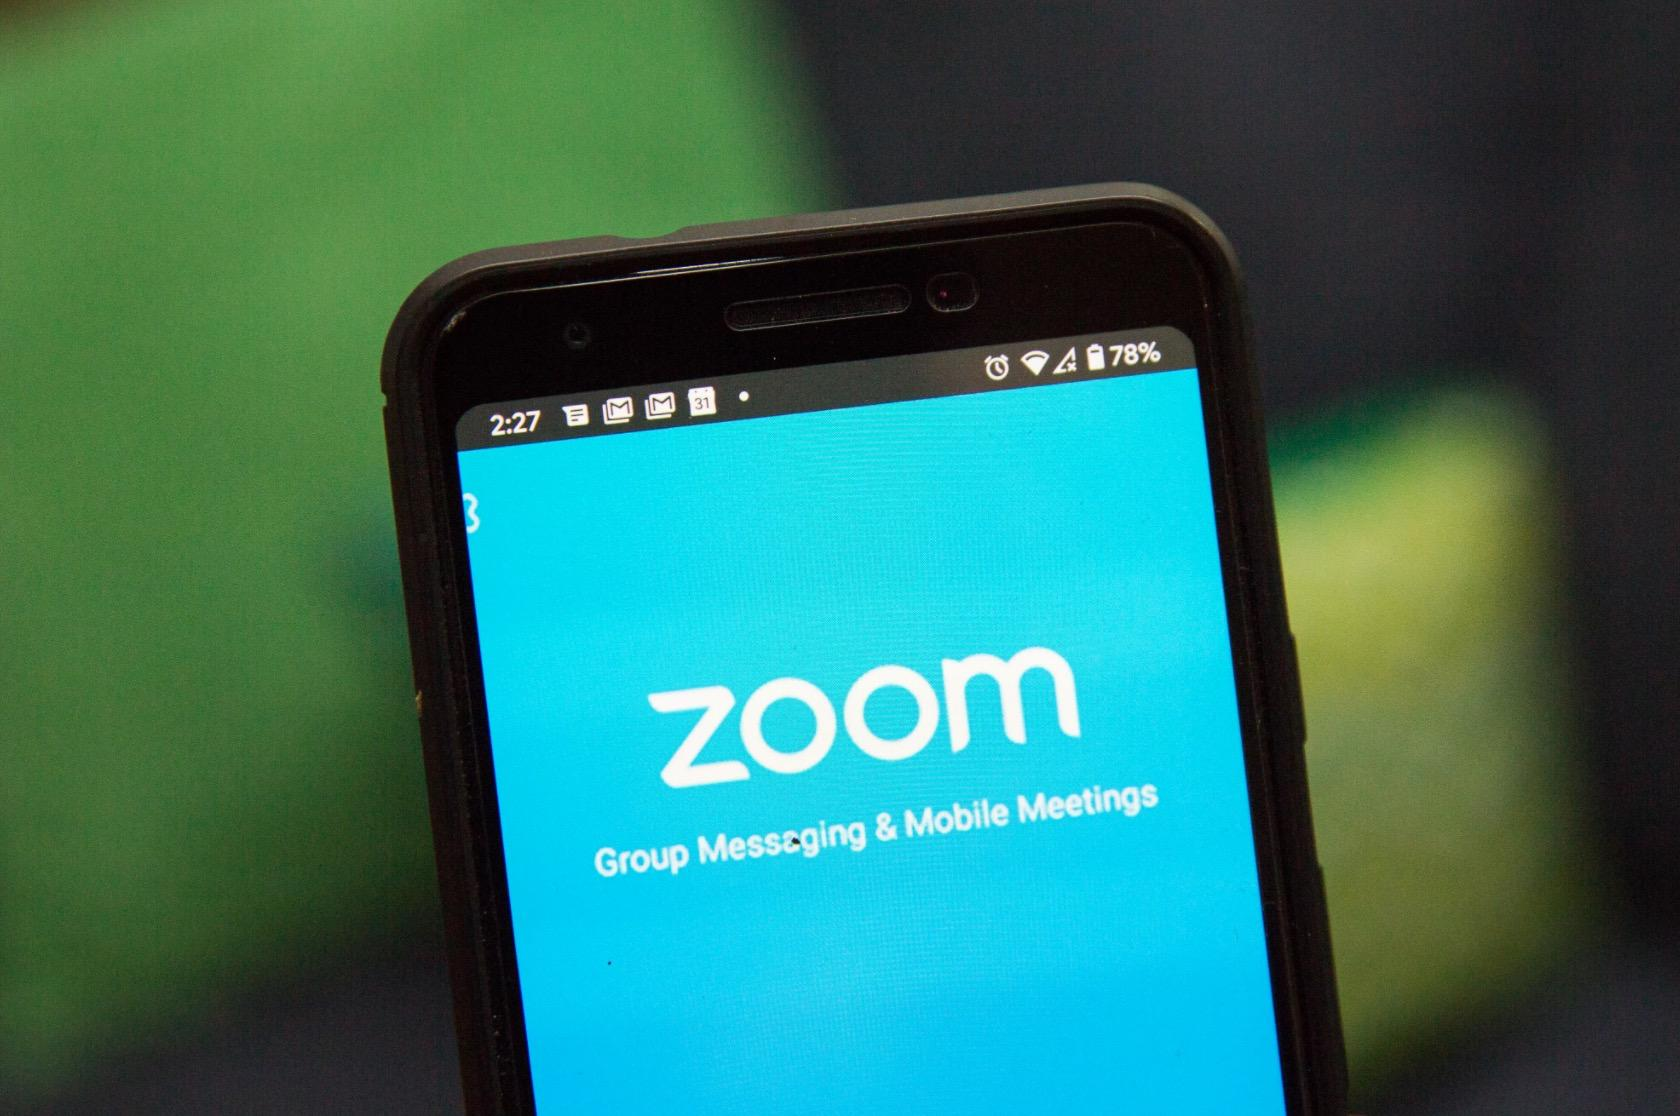 Zoom safely: How to password-protect your meetings